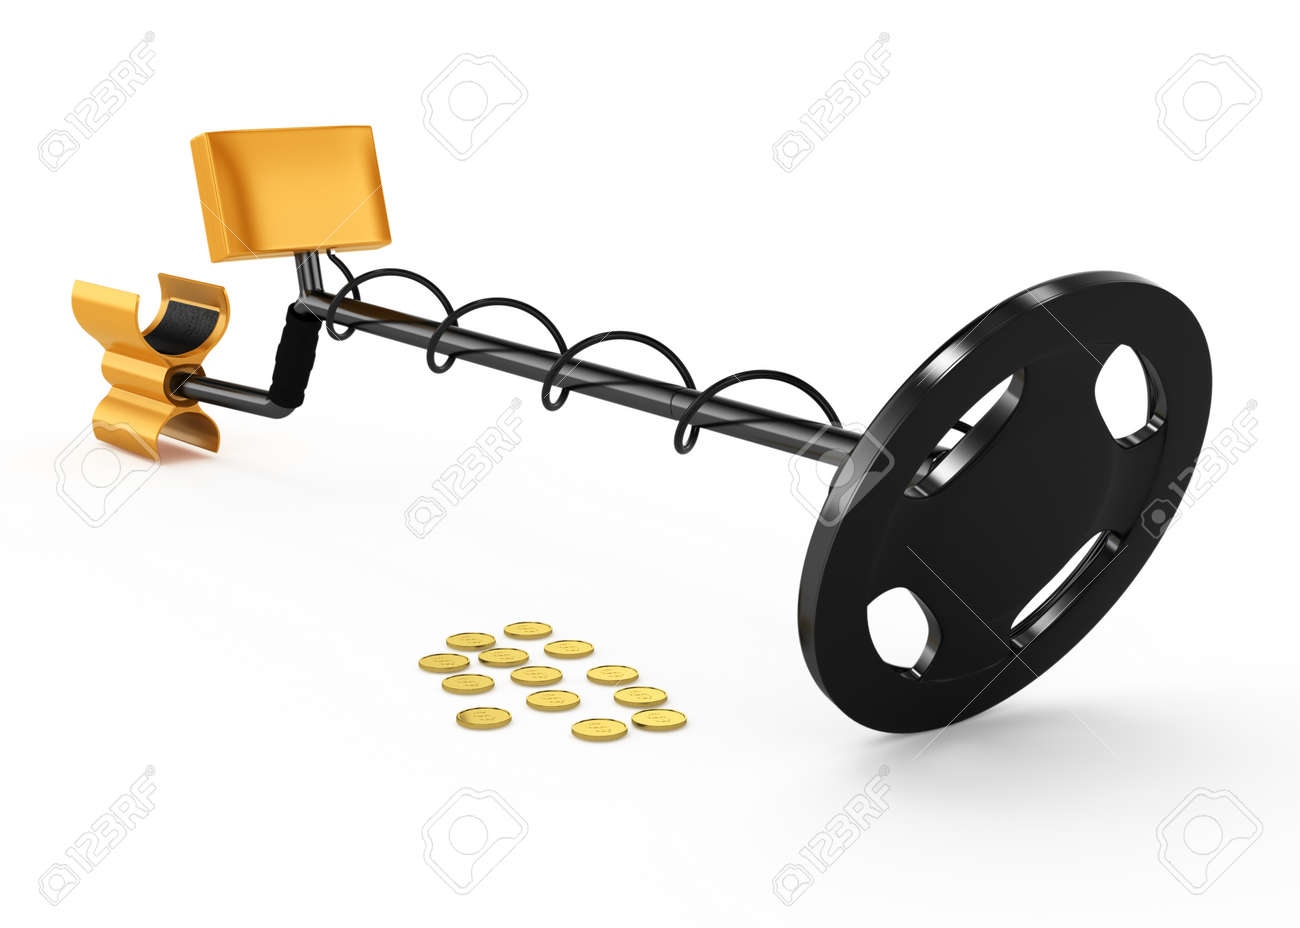 metal detector and coins isolated on white background  3d rendered image Stock Photo - 16455841